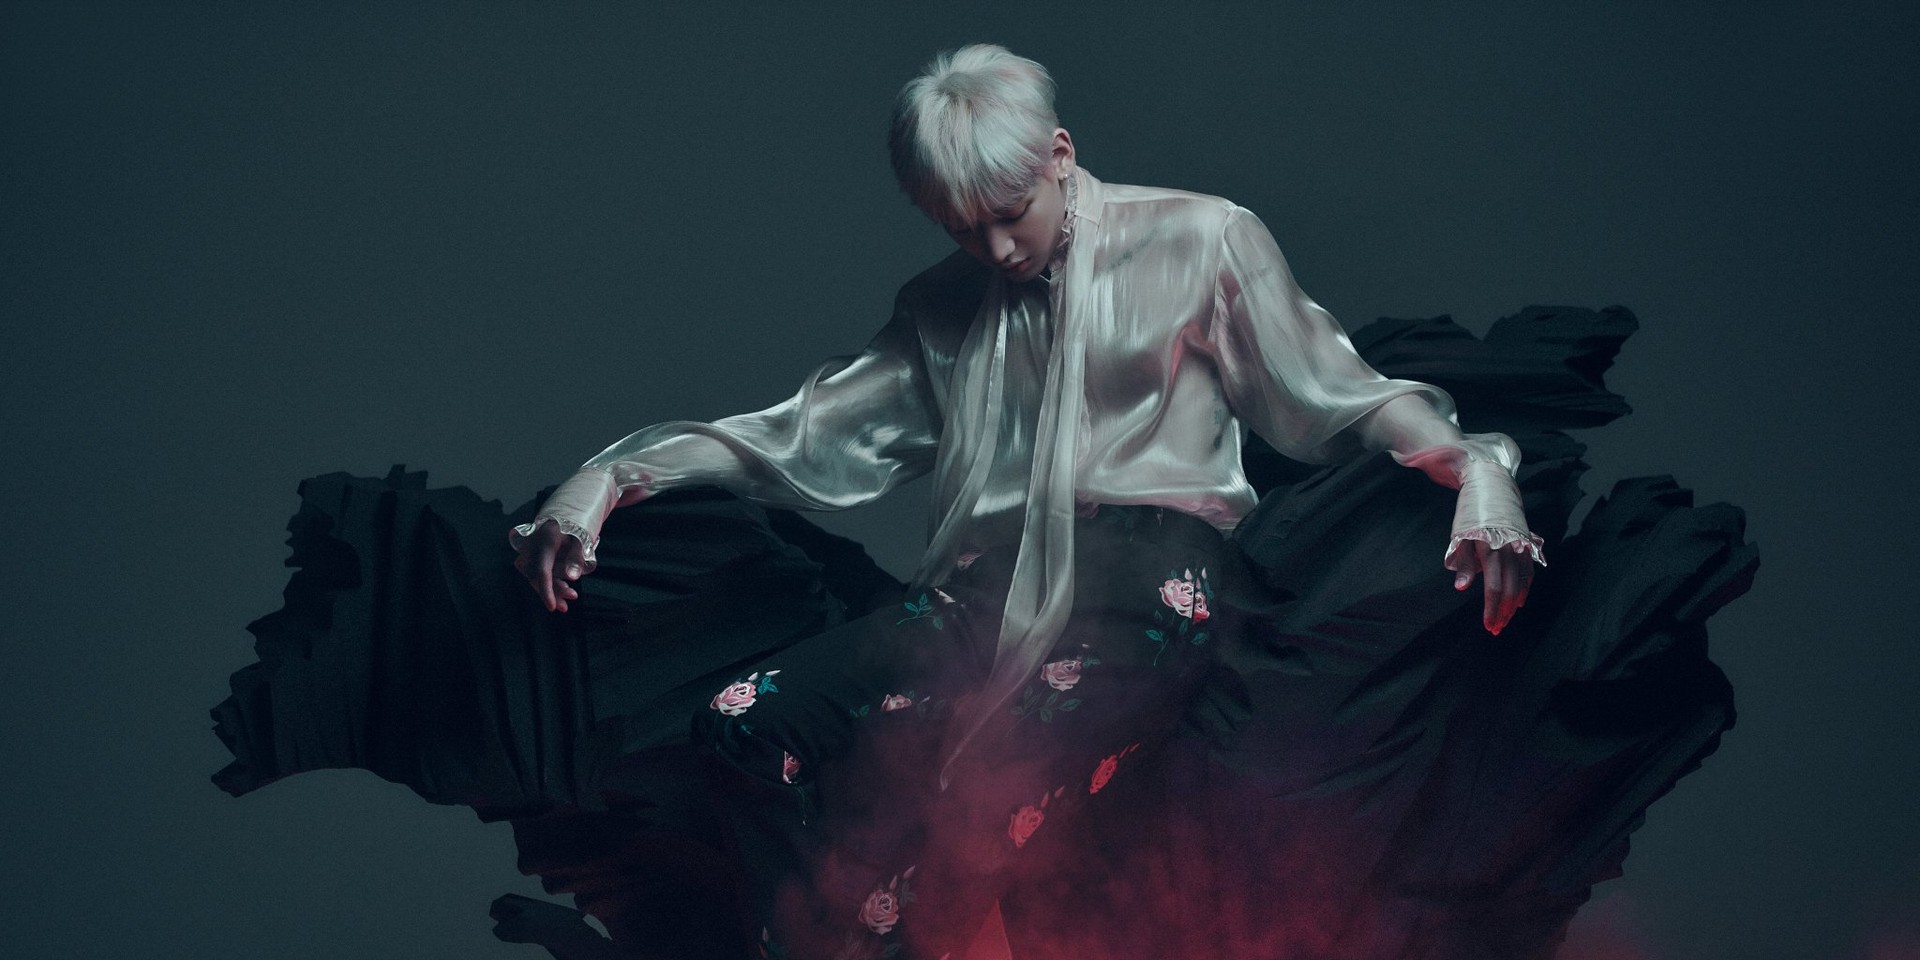 GOT7's BAMBAM to hold first-ever online concert this October